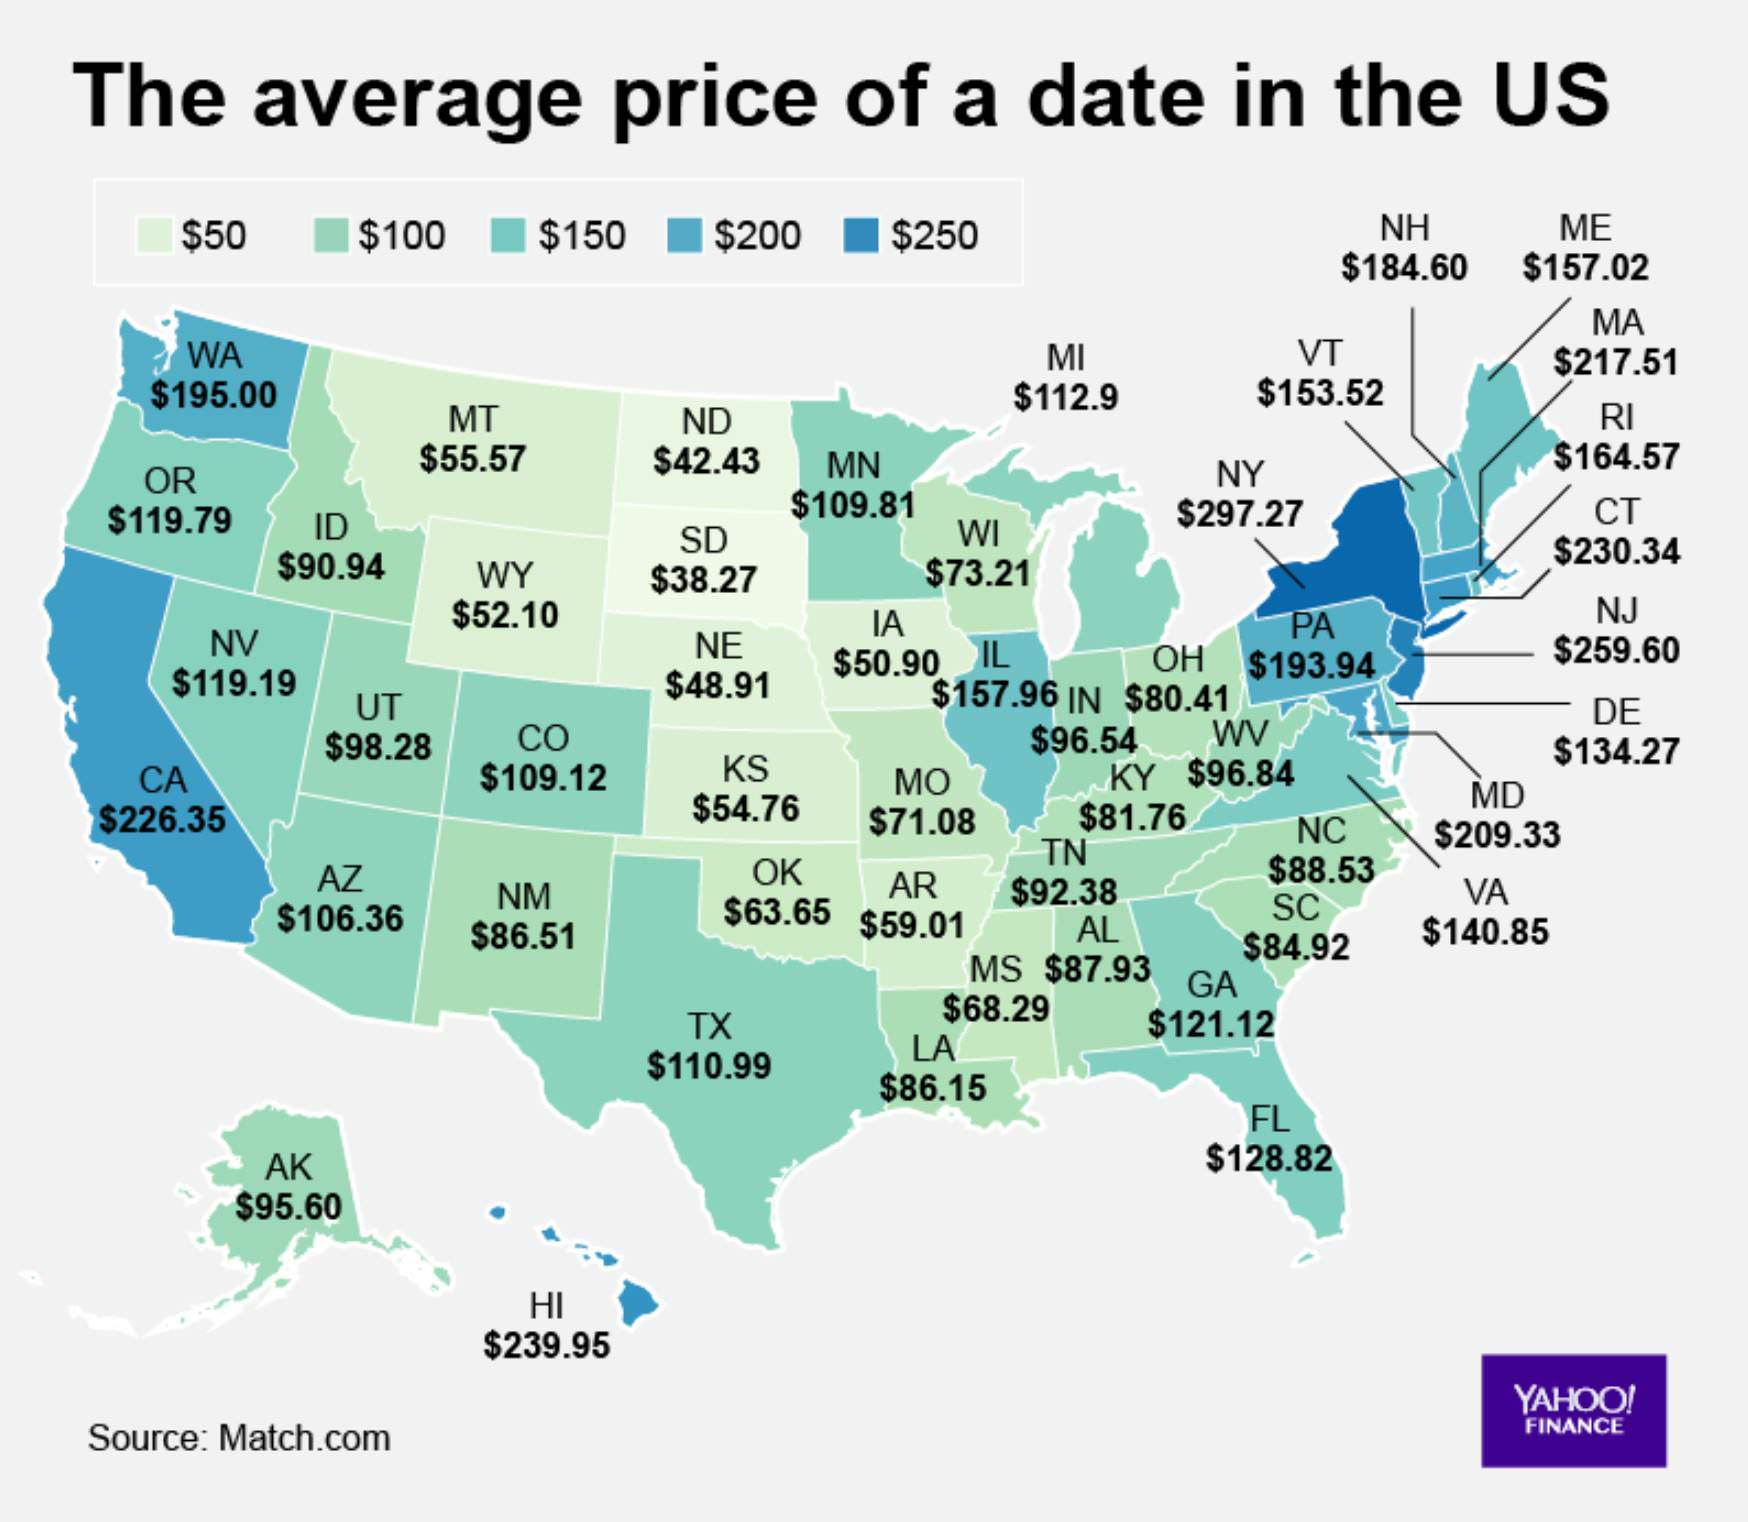 Average price of a date in the US